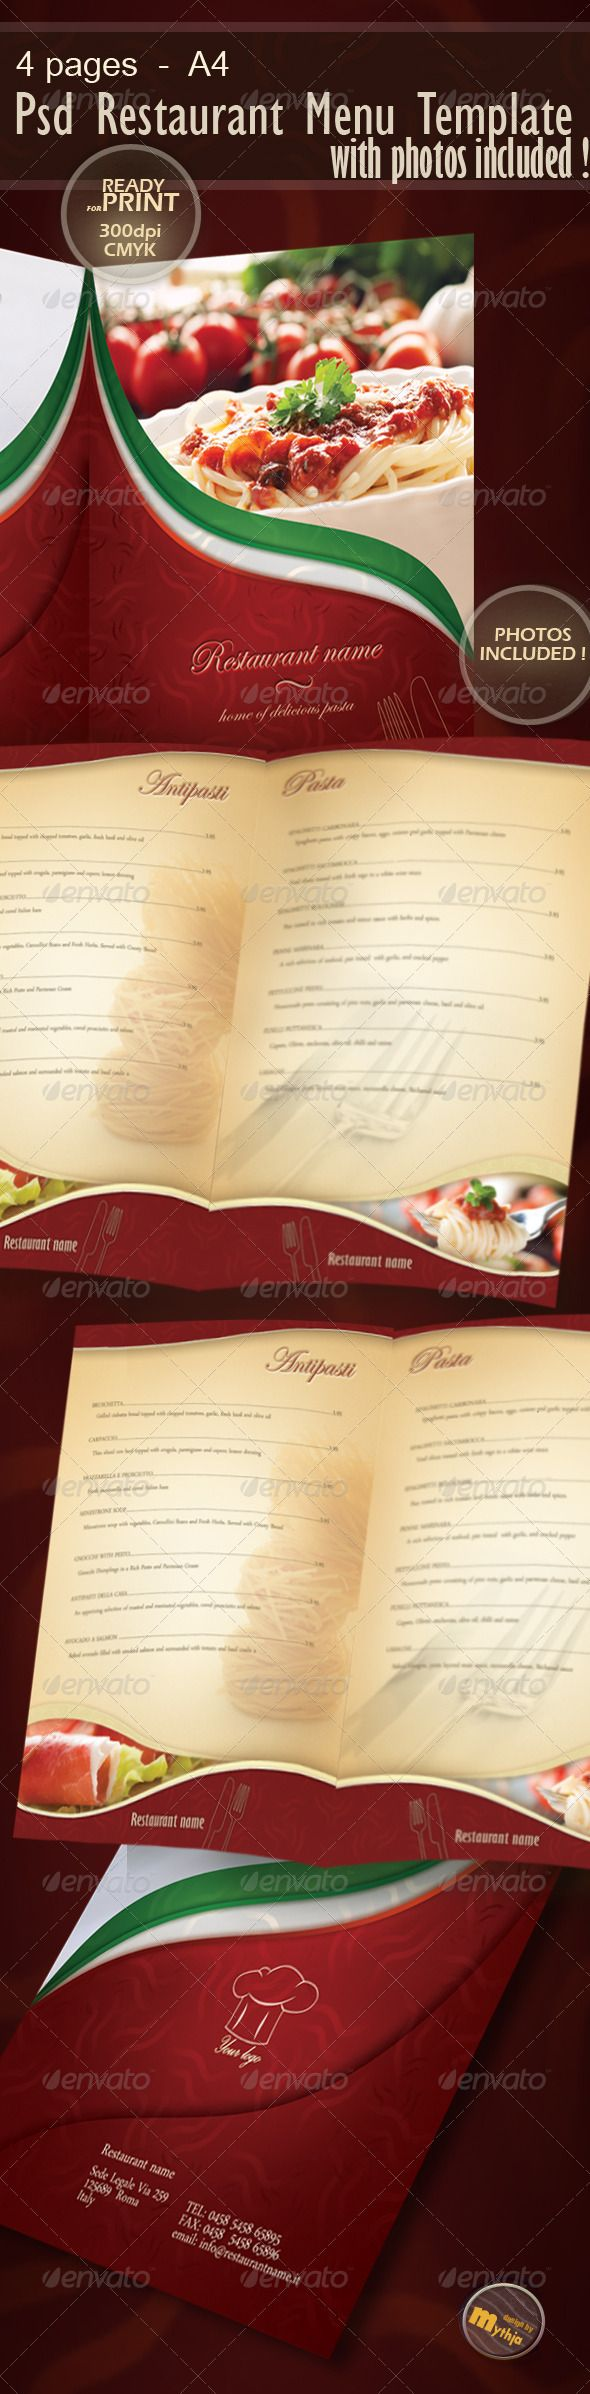 Restaurant Menu template with photos incuded #red #dinner #PSD • Click here to download ! http://graphicriver.net/item/restaurant-menu-template-with-photos-incuded/1176350?s_rank=122&ref=pxcr